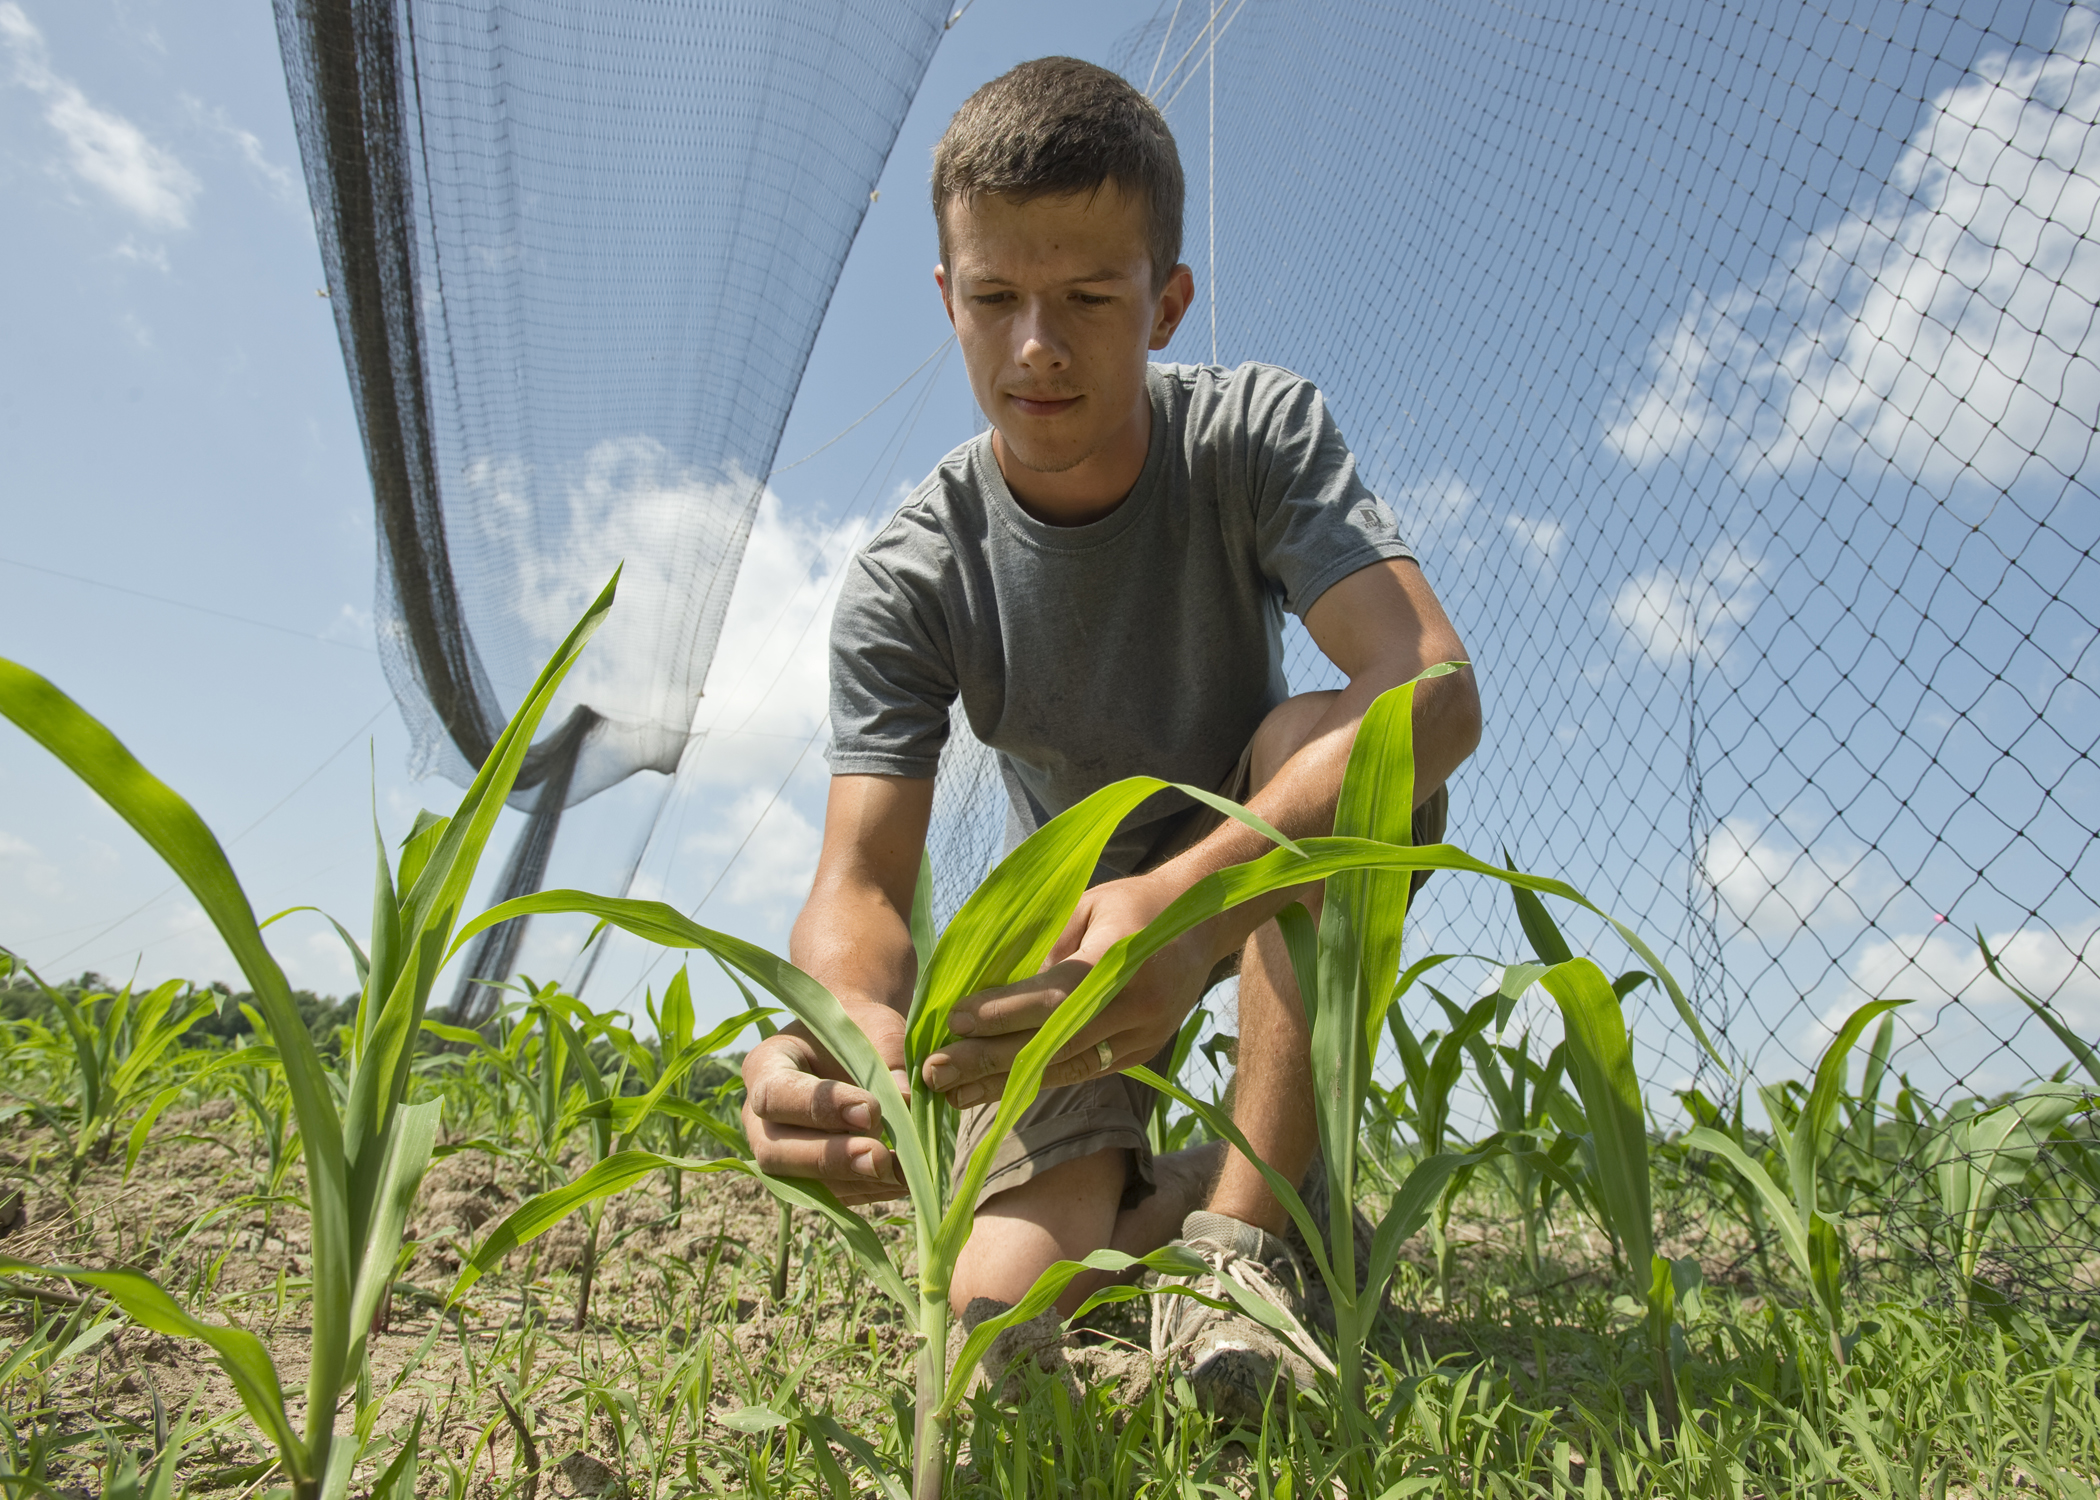 Josiah Maine, a former graduate student, examines a young corn plant.